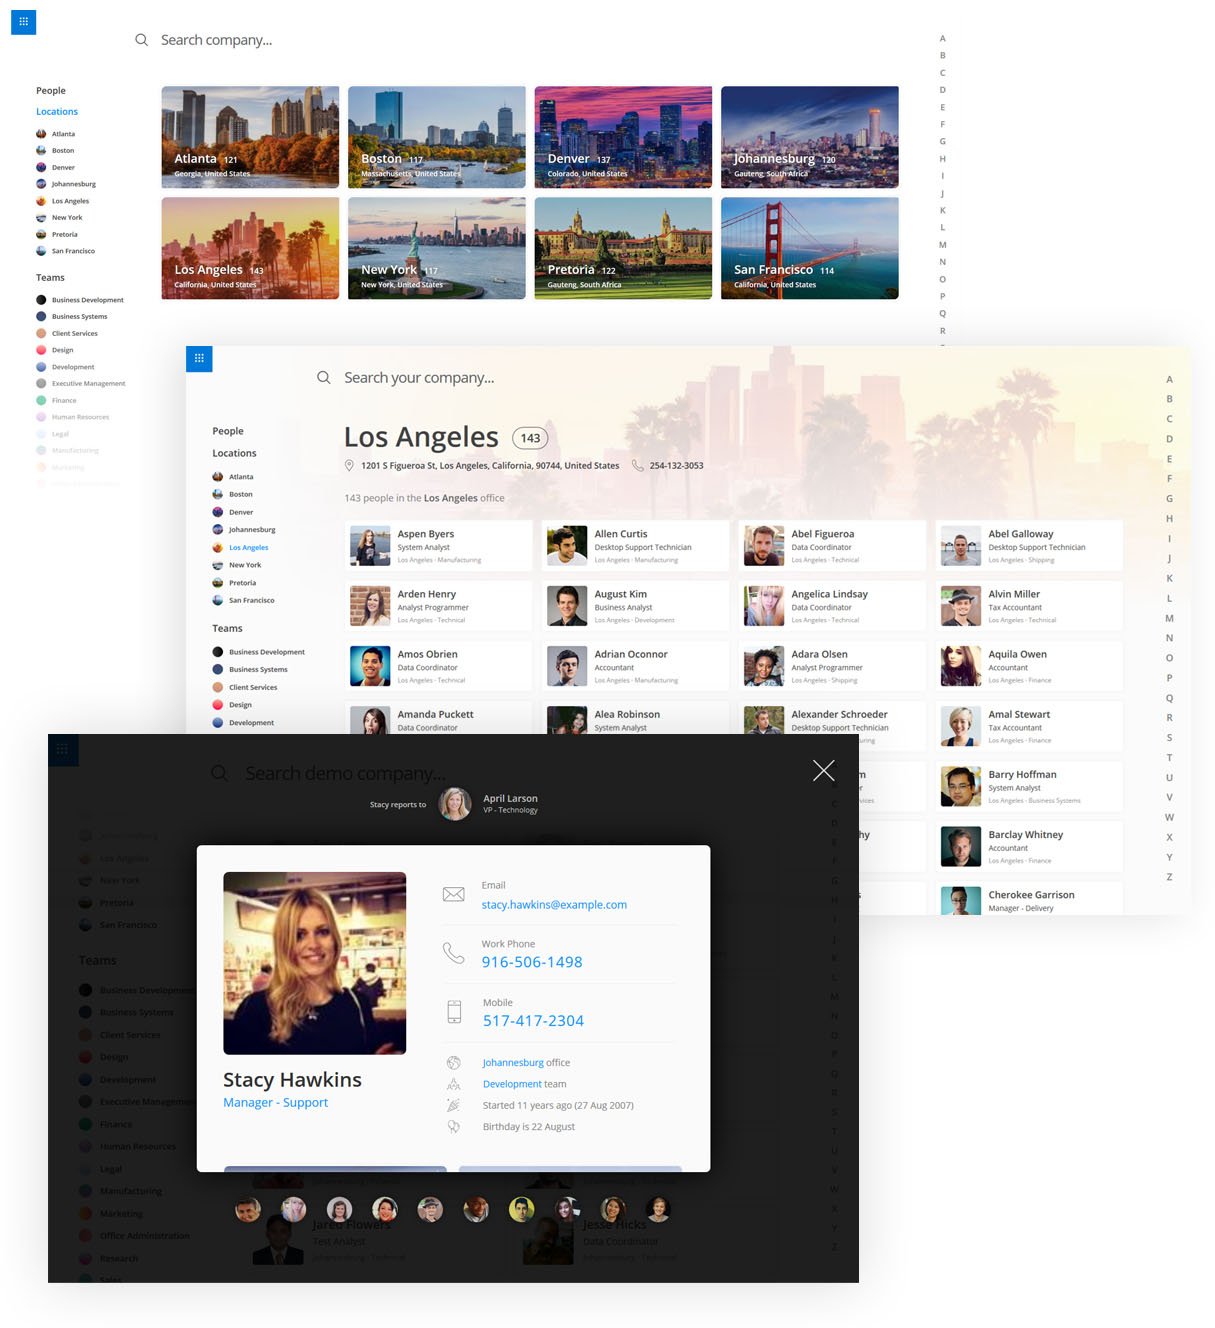 OneDirectory - Modern employee directory software for Microsoft Office 365